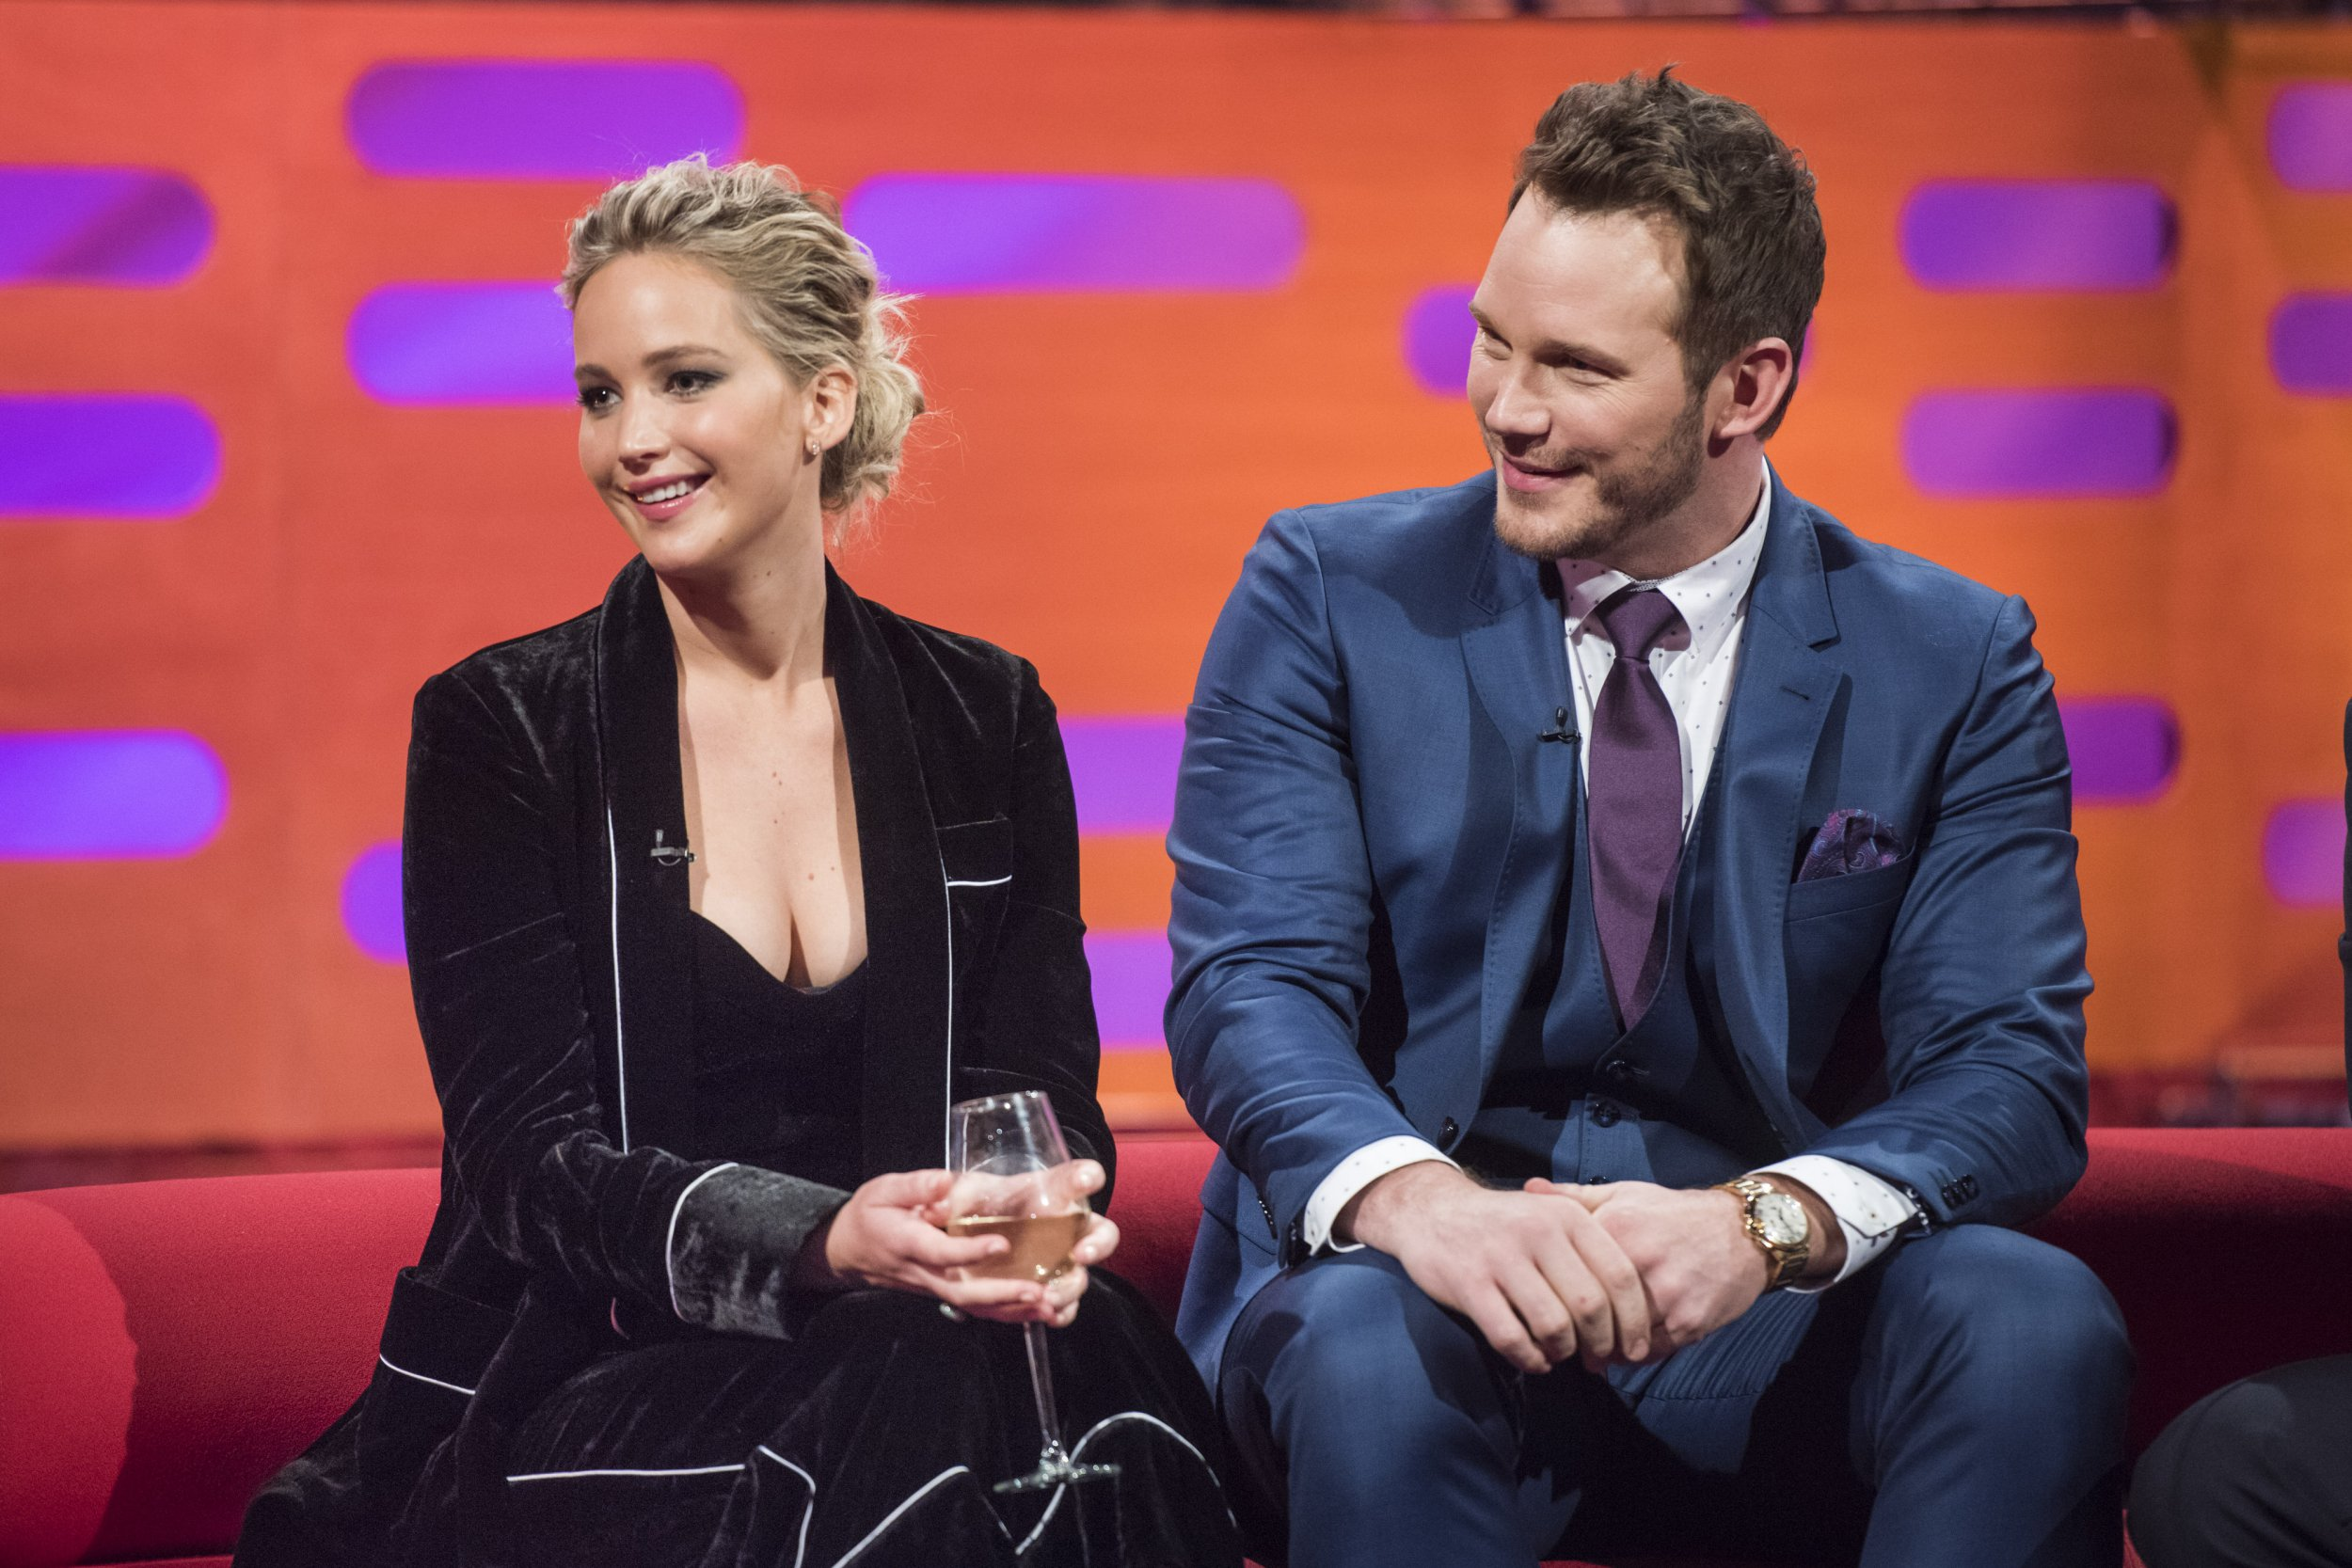 Jennifer Lawrence, Chris Pratt , during the filming of the Graham Norton Show at The London Studios, south London, to be aired on BBC One on Friday evening. PRESS ASSOCIATION Photo. Picture date: Thursday December 1, 2016. Photo credit should read: PA Images on behalf of So TV/PA Wire